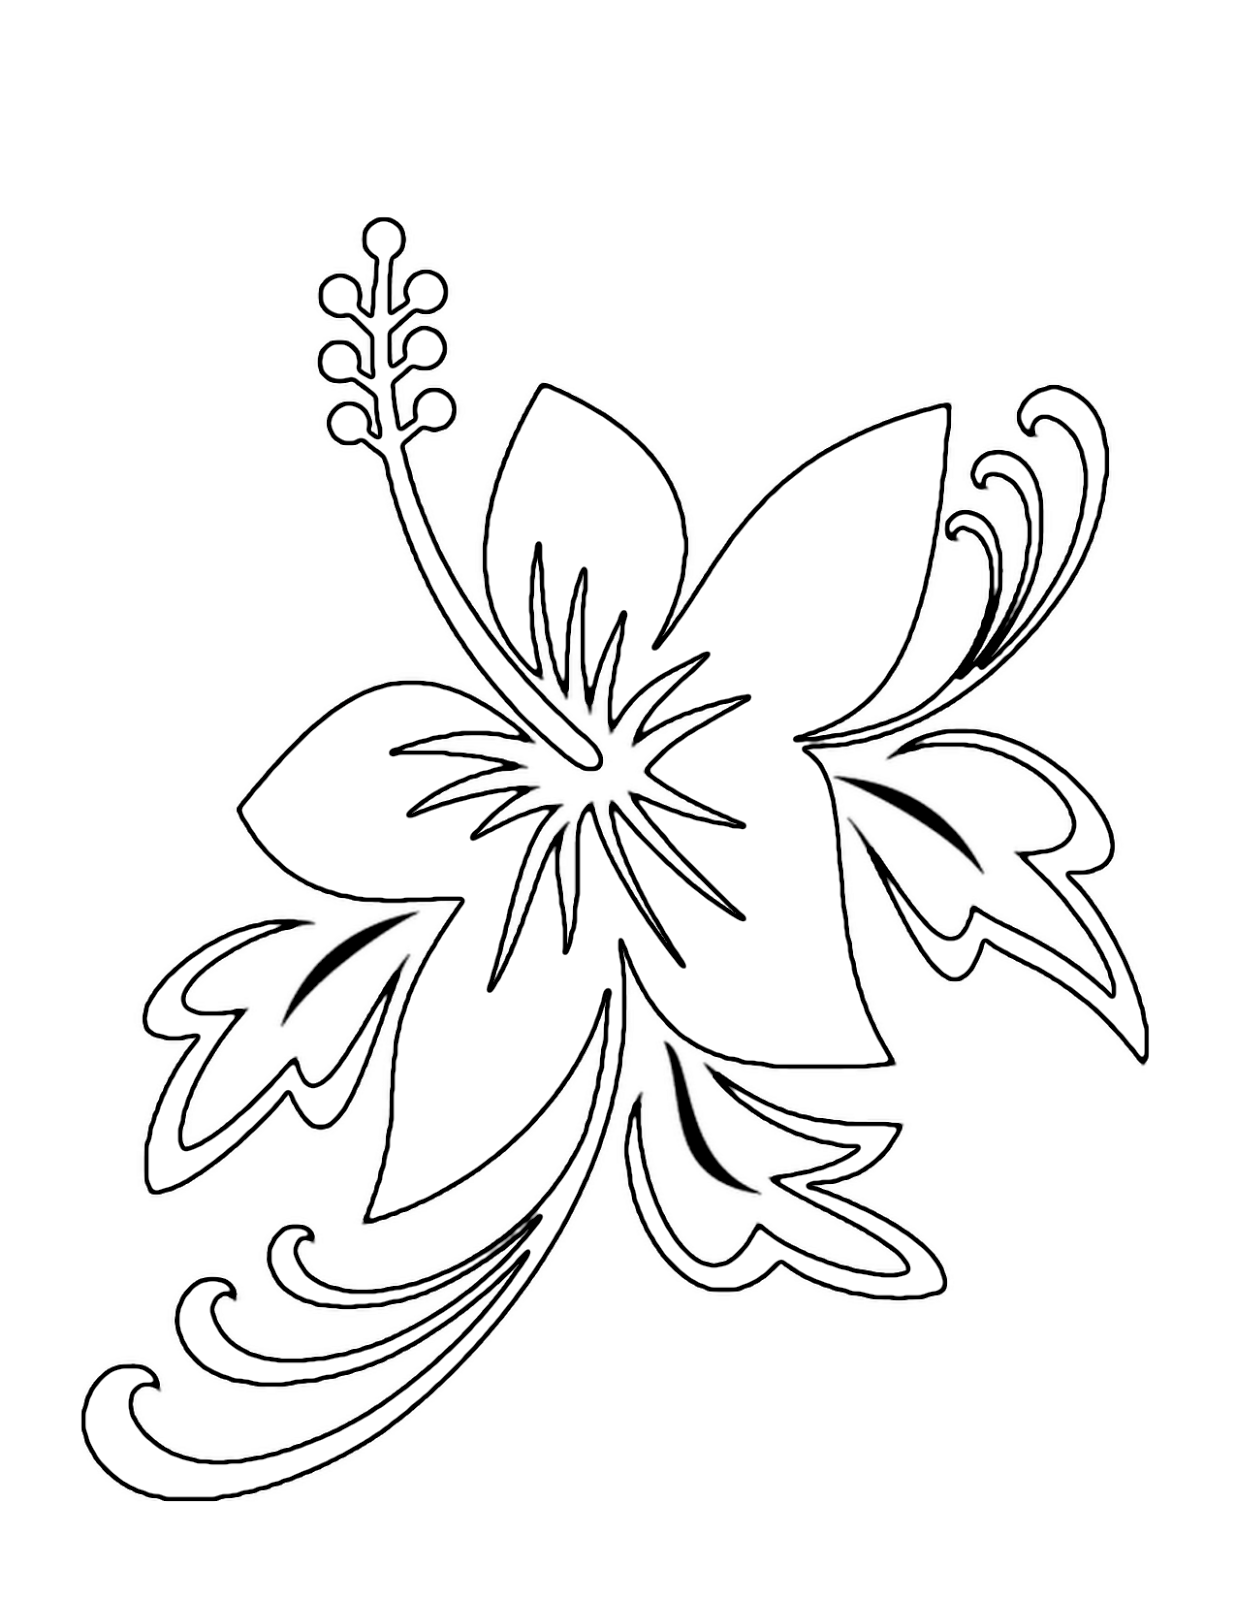 Tropical Flower Coloring Pages Flower Coloring Page Printable Flower Coloring Pages Bird Coloring Pages Flower Coloring Pages